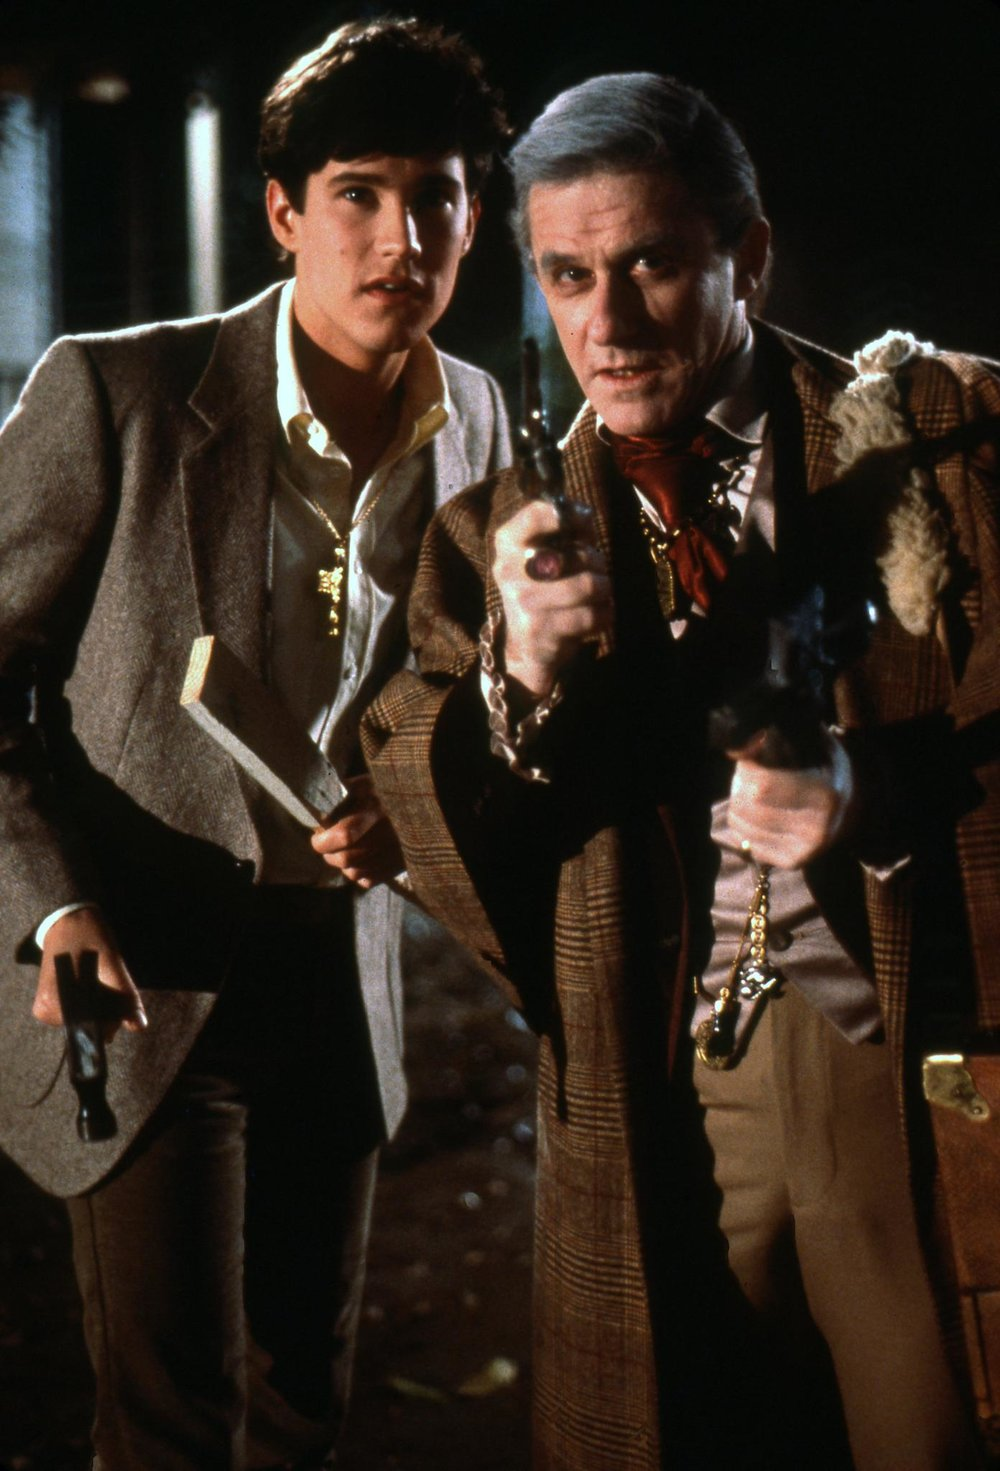 Fright_Night_1985_Roddy_McDowall_William_Ragsdale_01.jpg